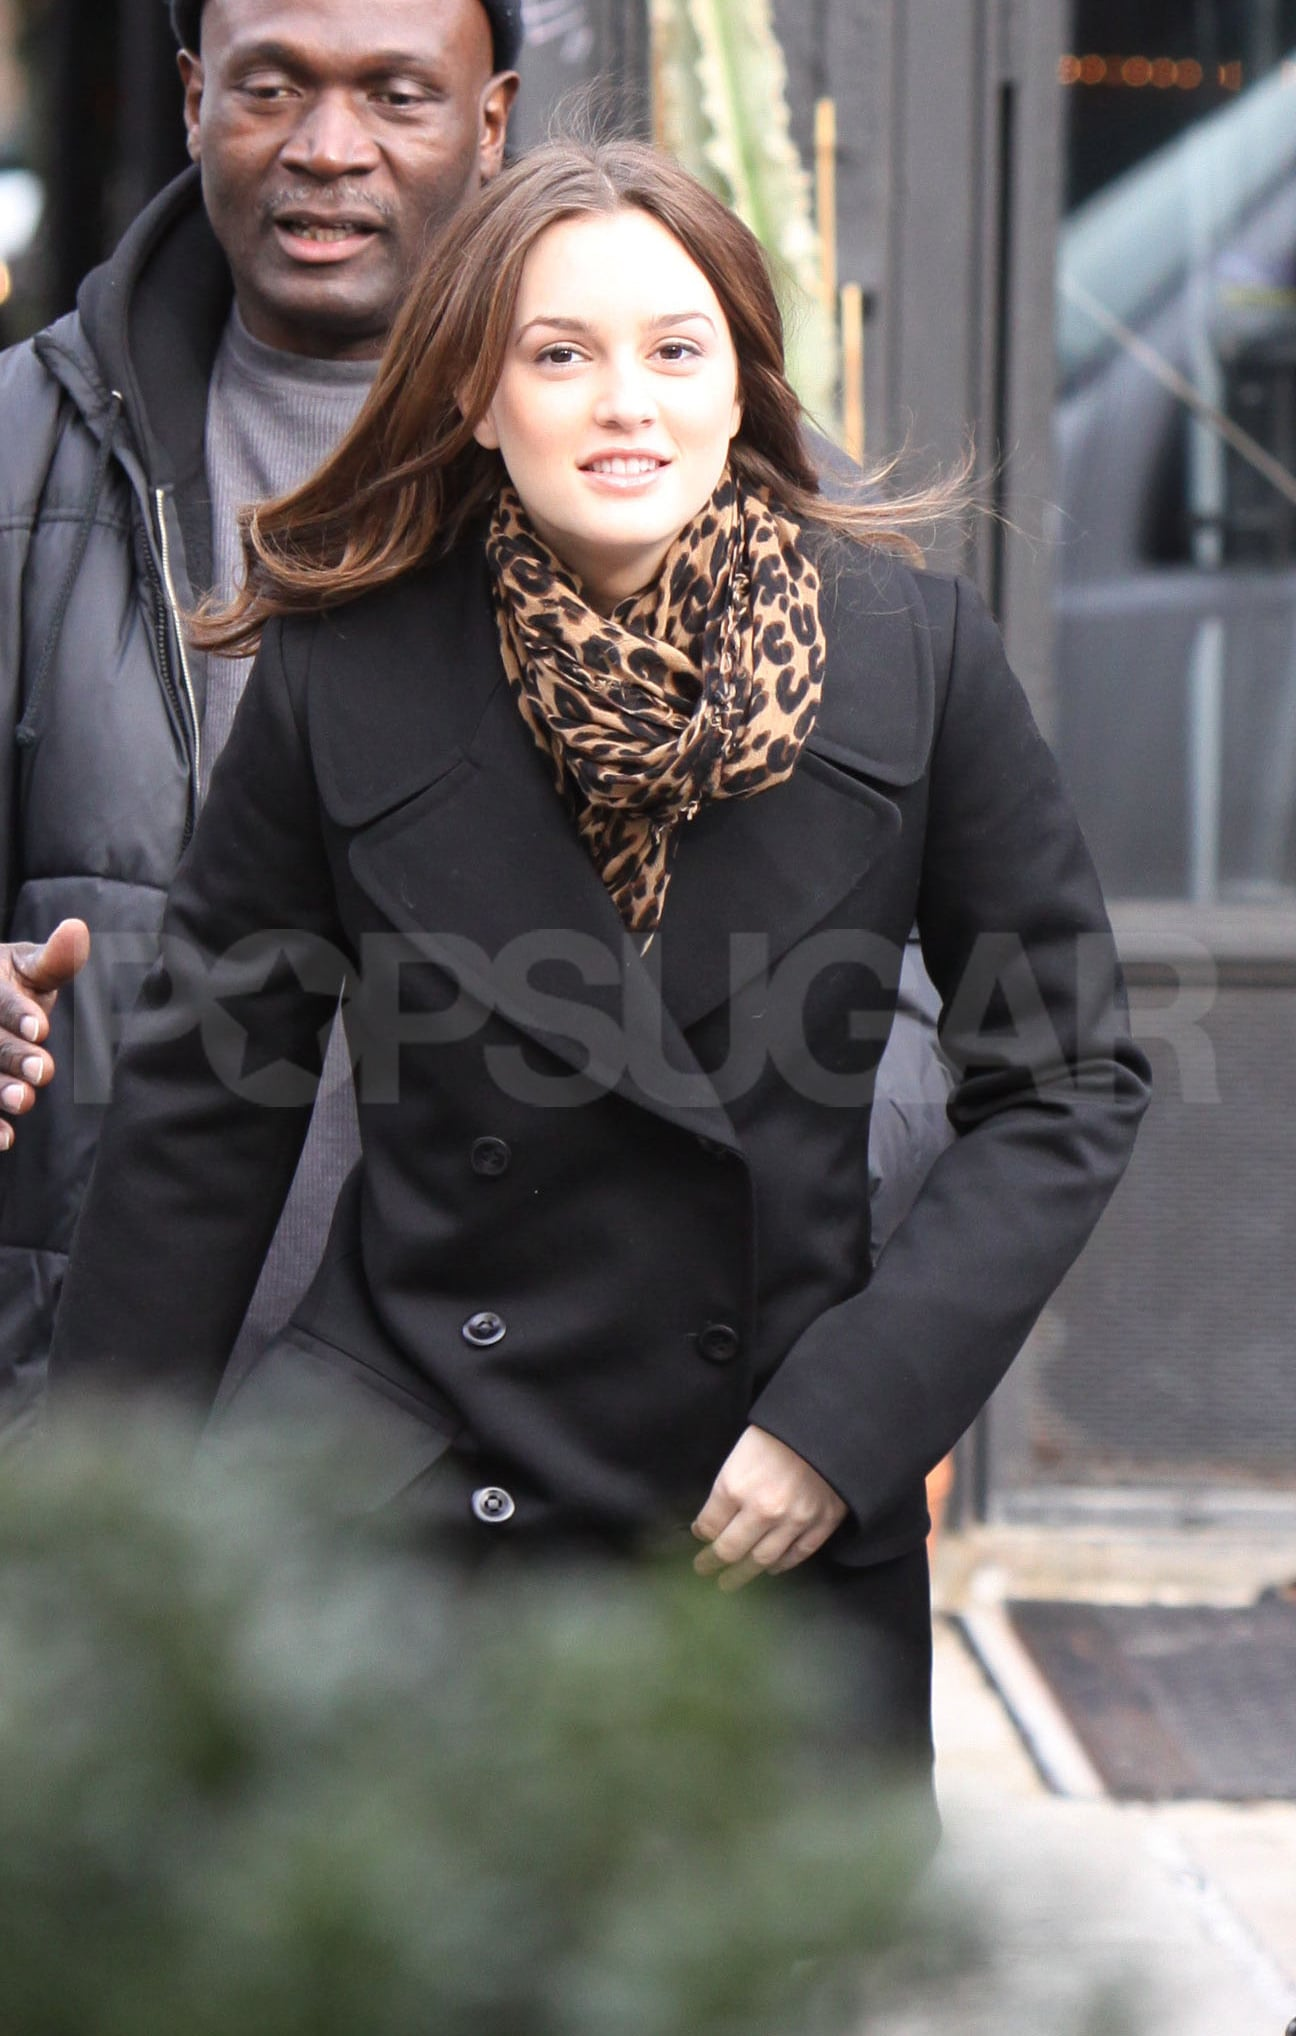 photos of the gossip girl cast filming season 3 in new